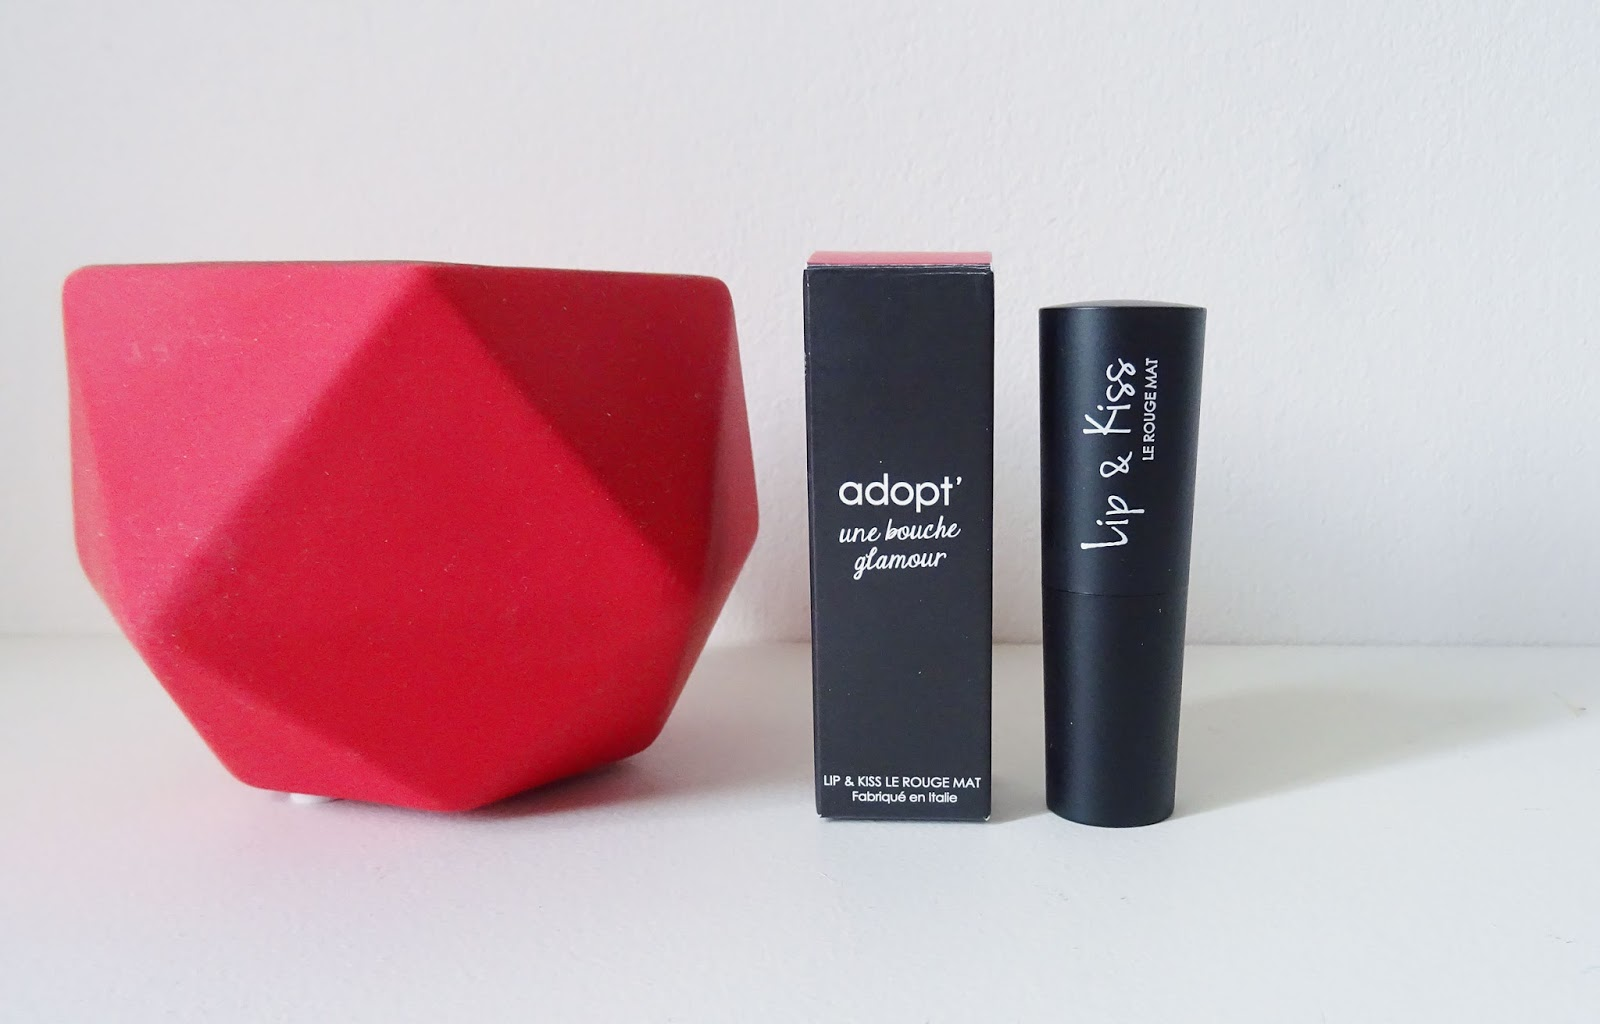 Lip & Kiss, Le rouge mat Adopt'